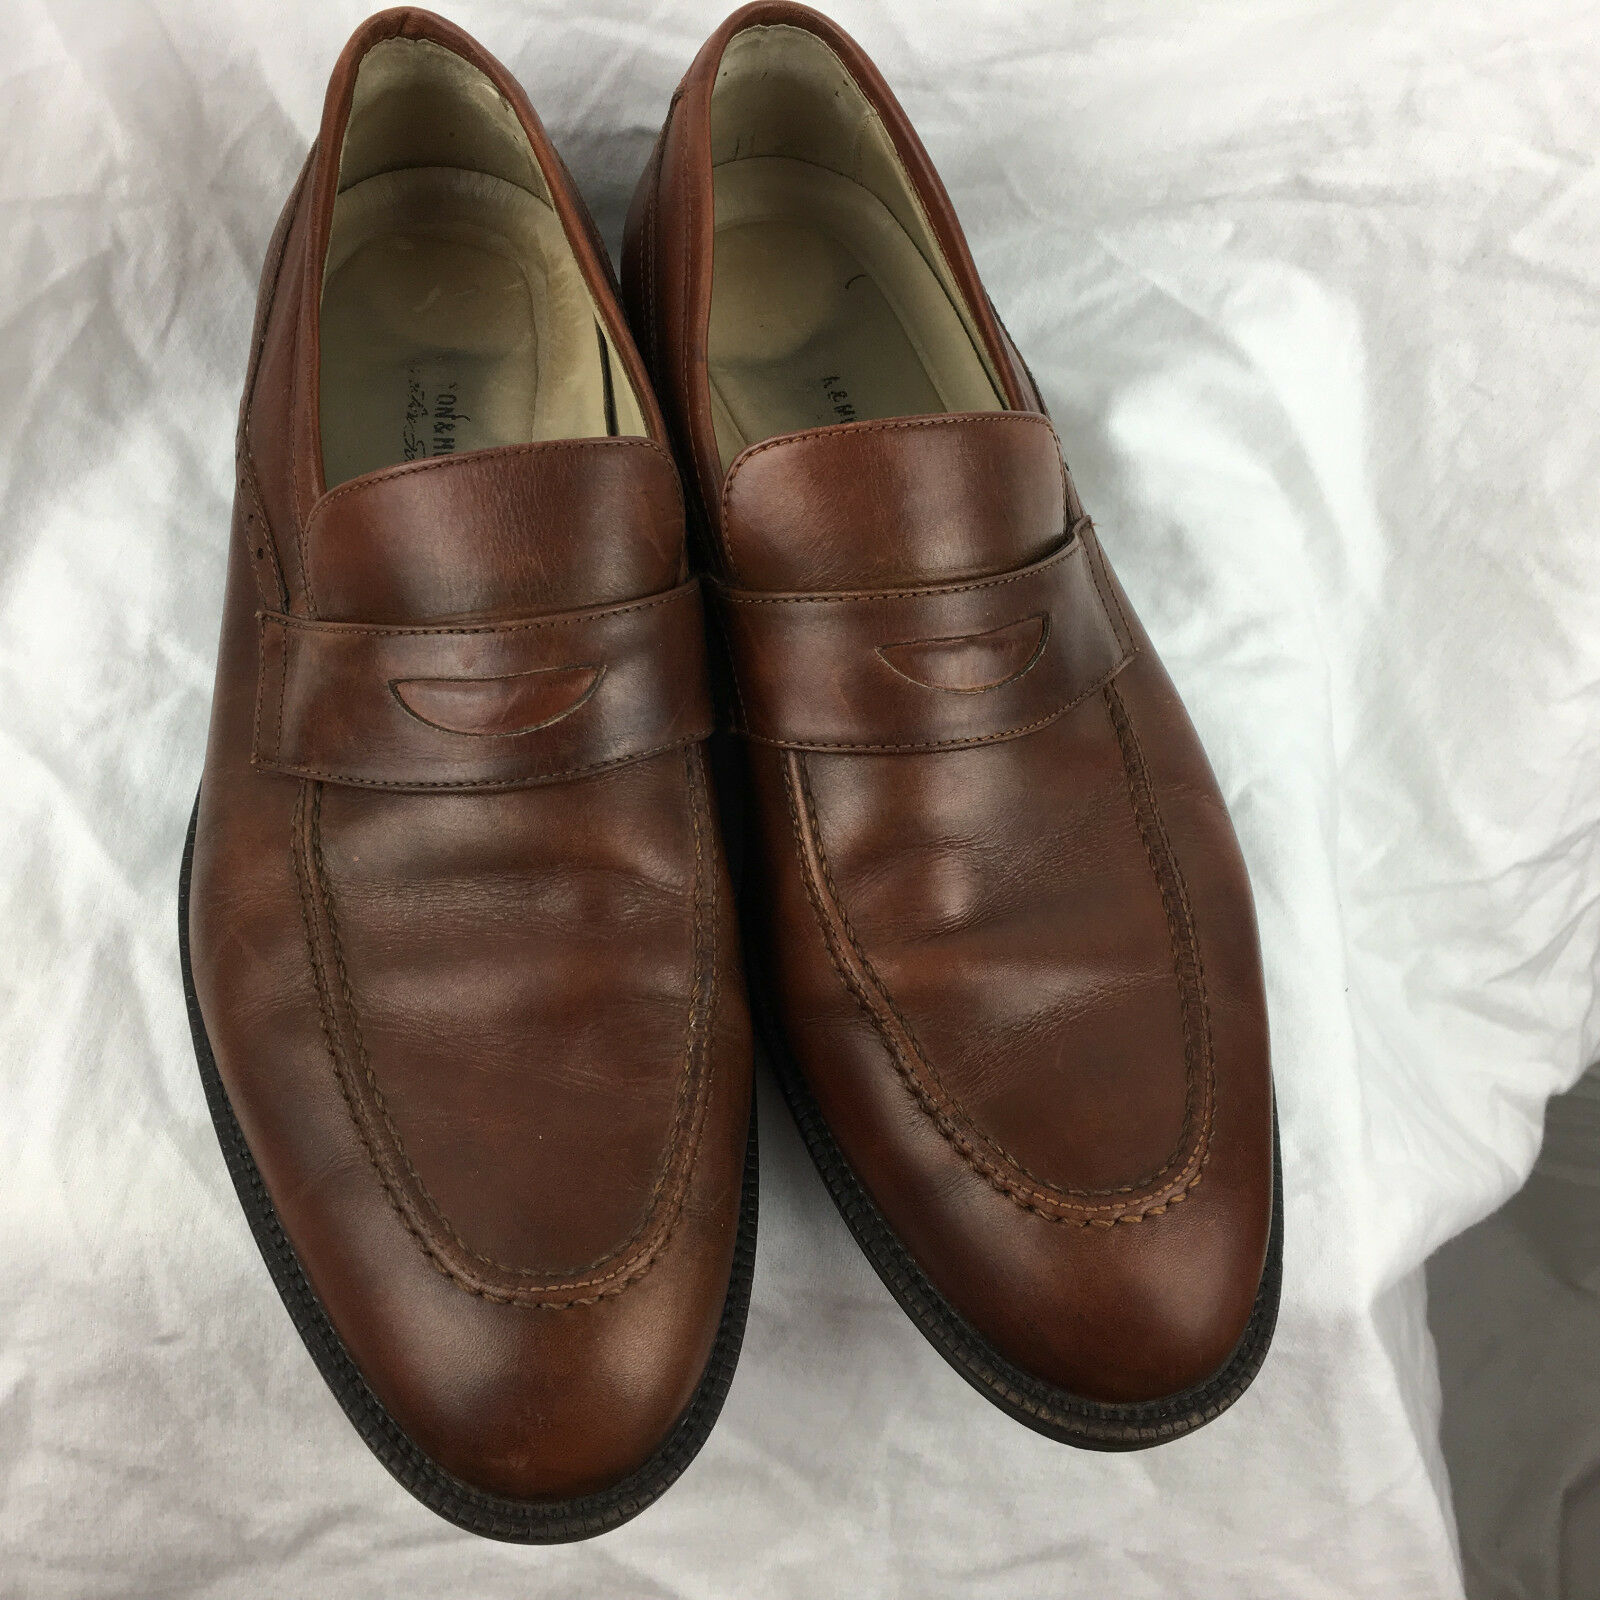 Johnston and Murphy Men's Shoe 205930 Size 11M Brown Leather 205930 Shoe b5edd7